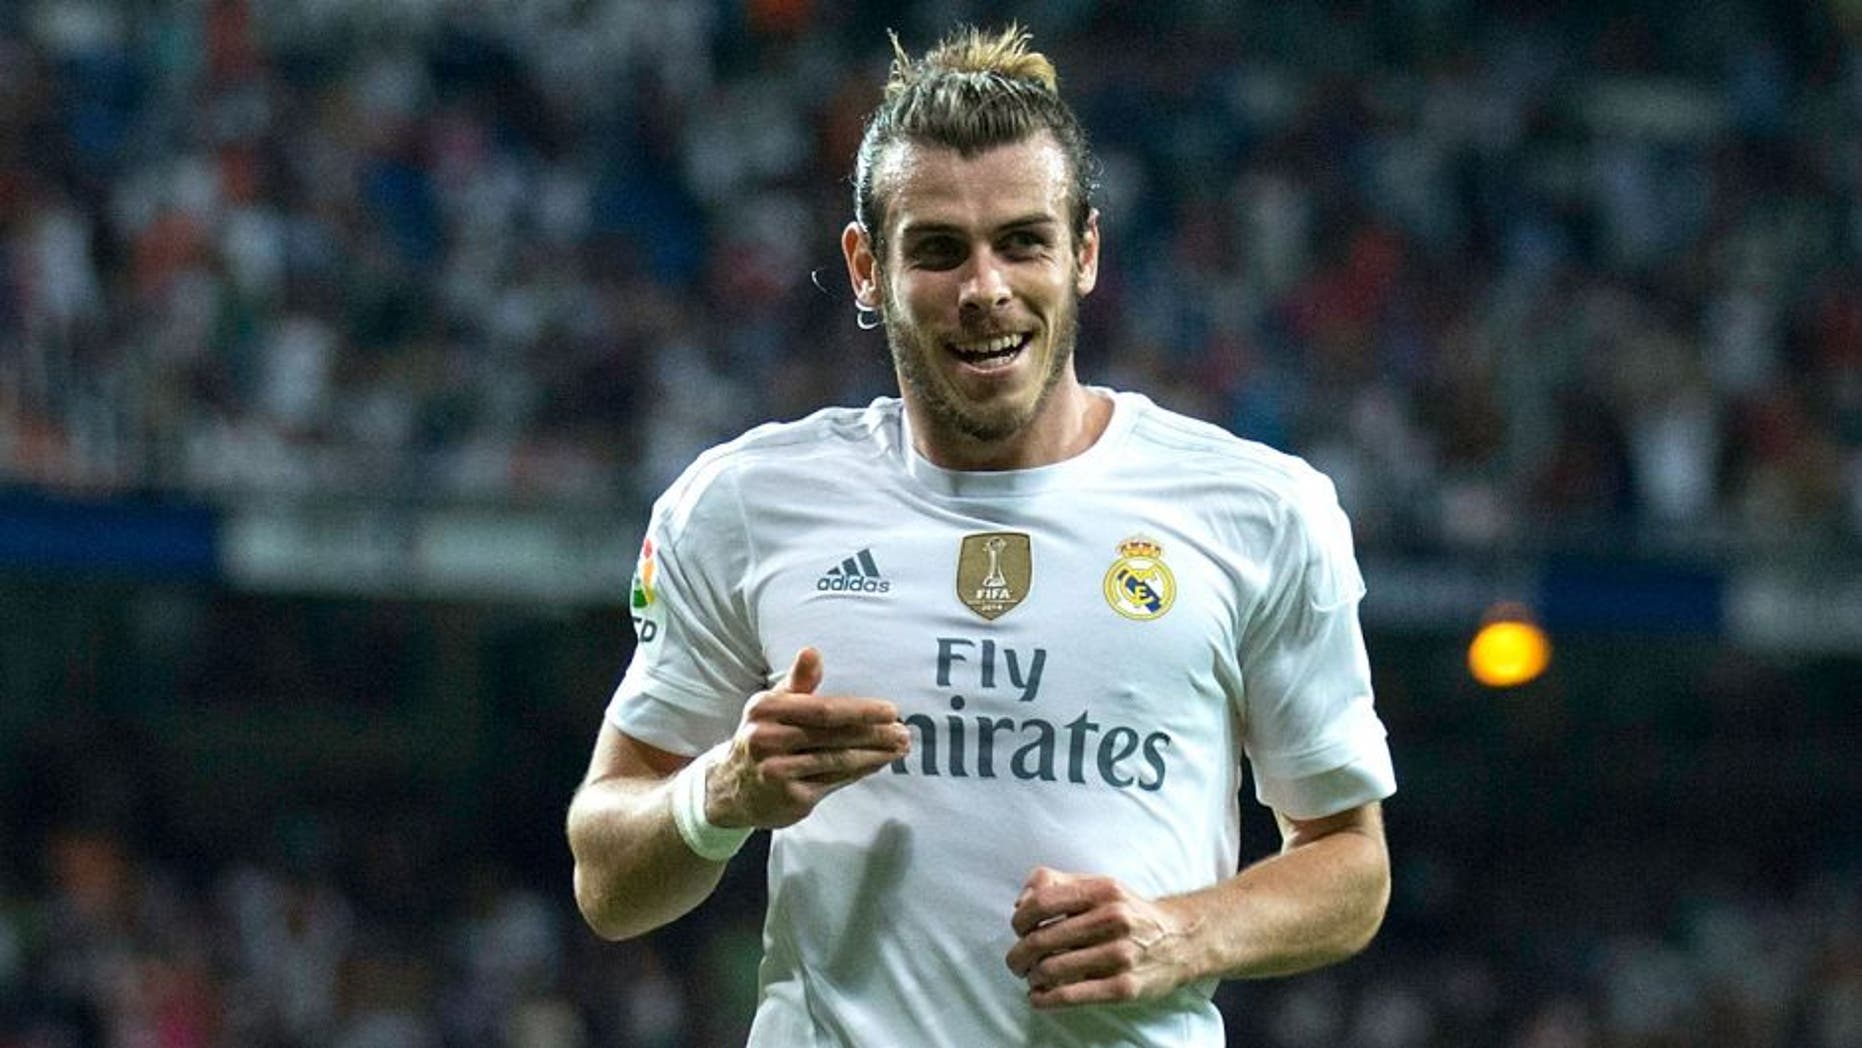 MADRID, SPAIN - AUGUST 29: Gareth Bale of Real Madrid CF celebrates scoring their fifth goal during the La Liga match between Real Madrid CF and Real Betis Balompie at Estadio Santiago Bernabeu on August 29, 2015 in Madrid, Spain. (Photo by Gonzalo Arroyo Moreno/Getty Images)